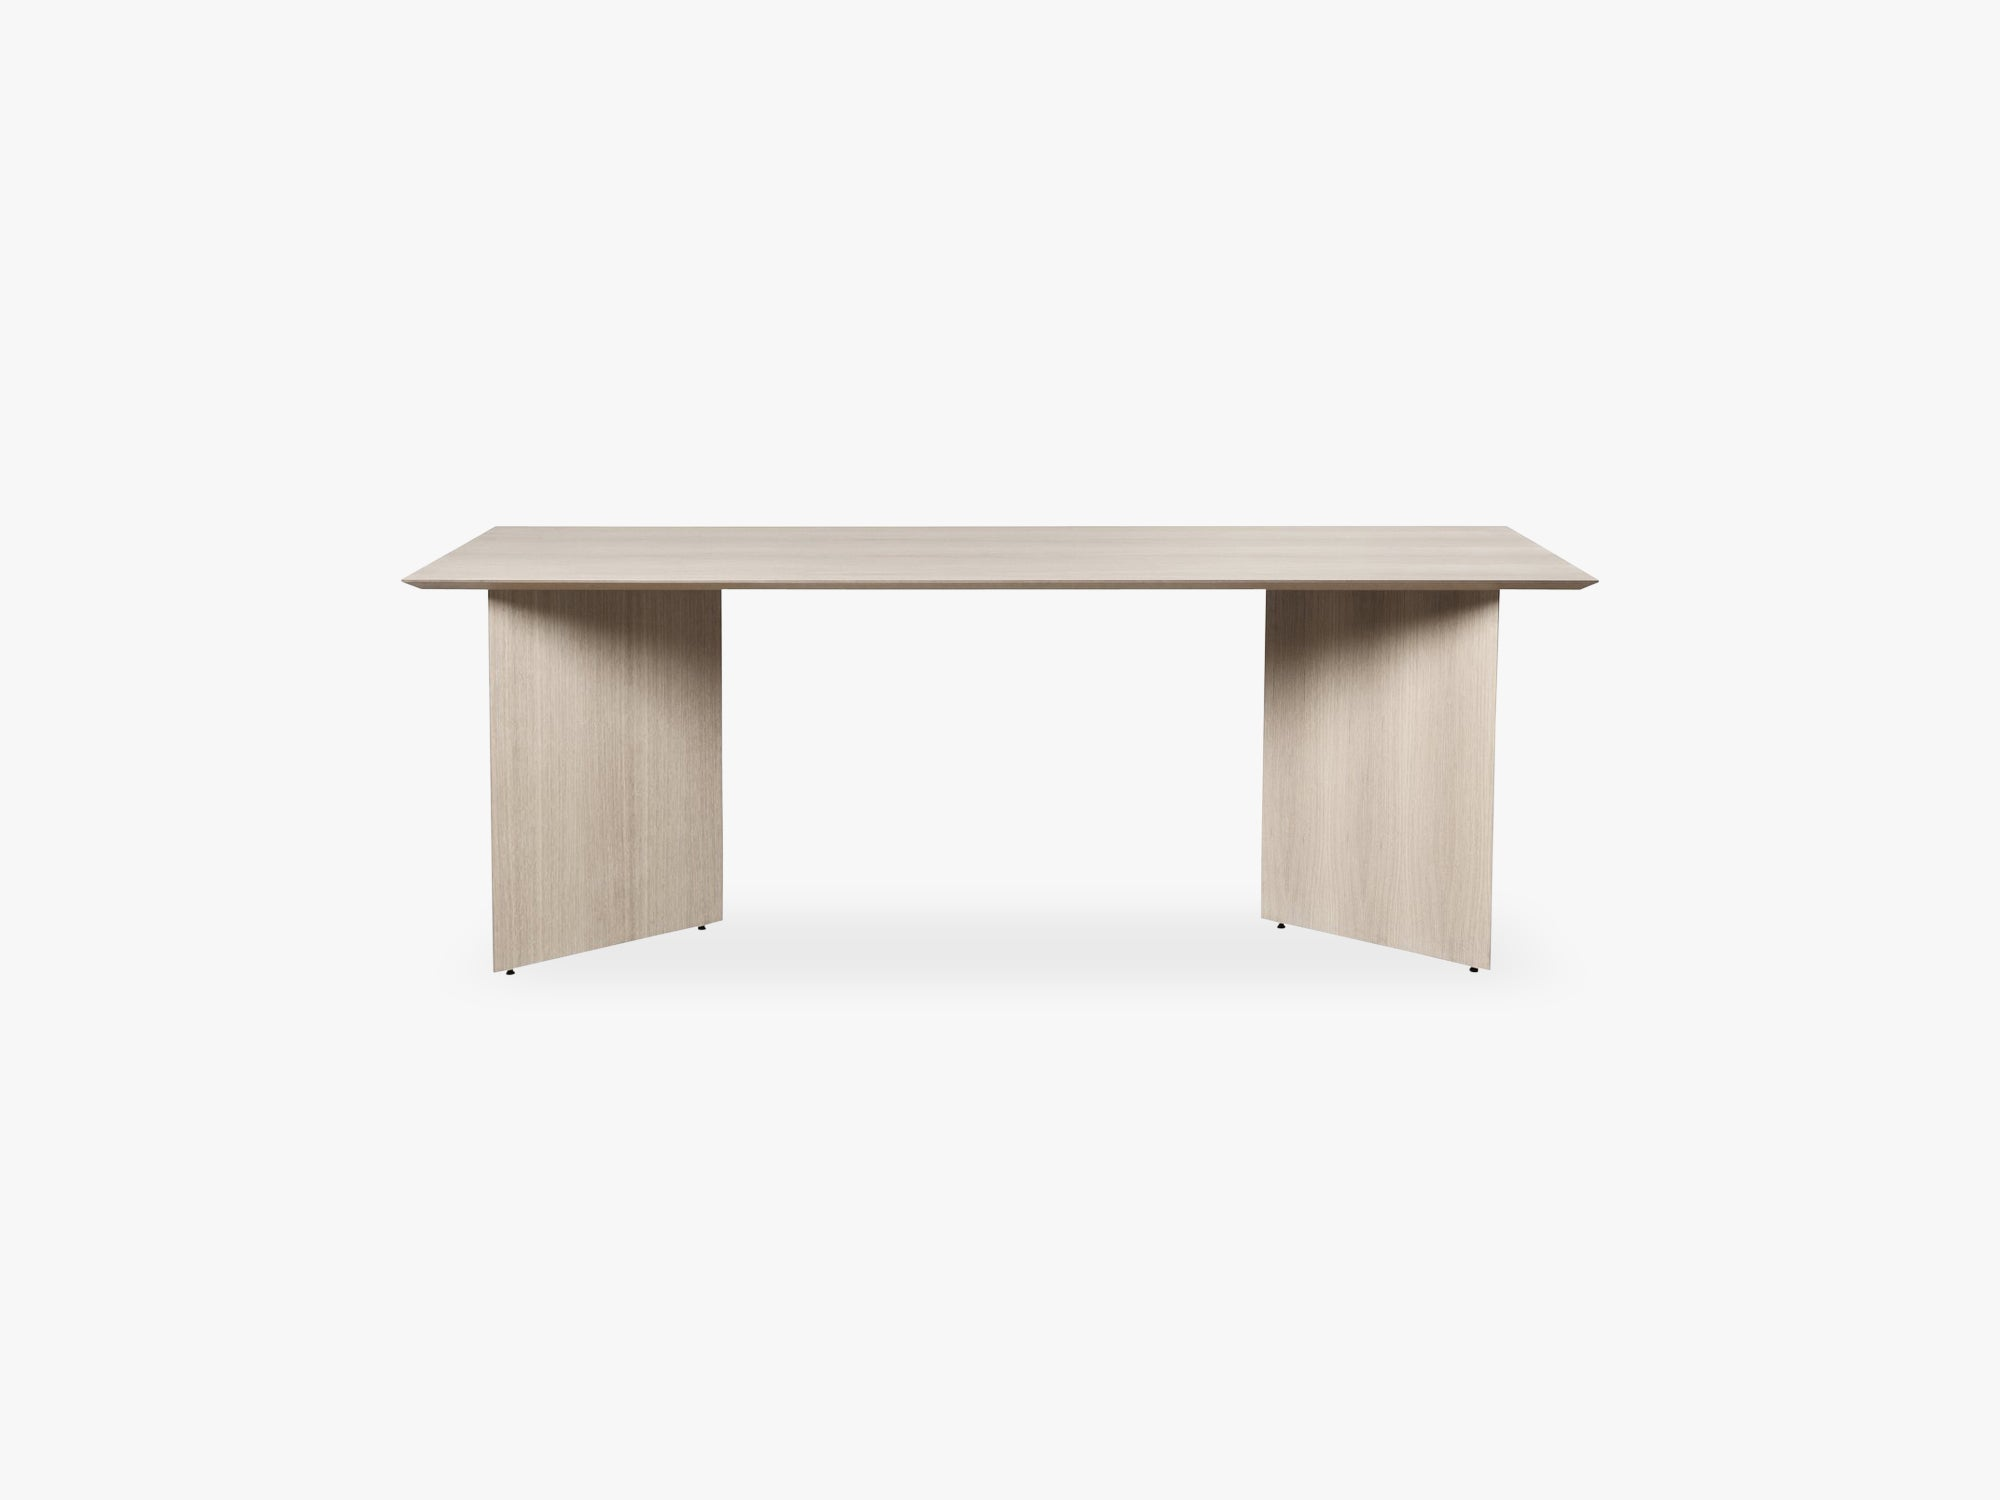 Mingle Table Top 210 cm, Natural Oak Veneer fra Ferm Living